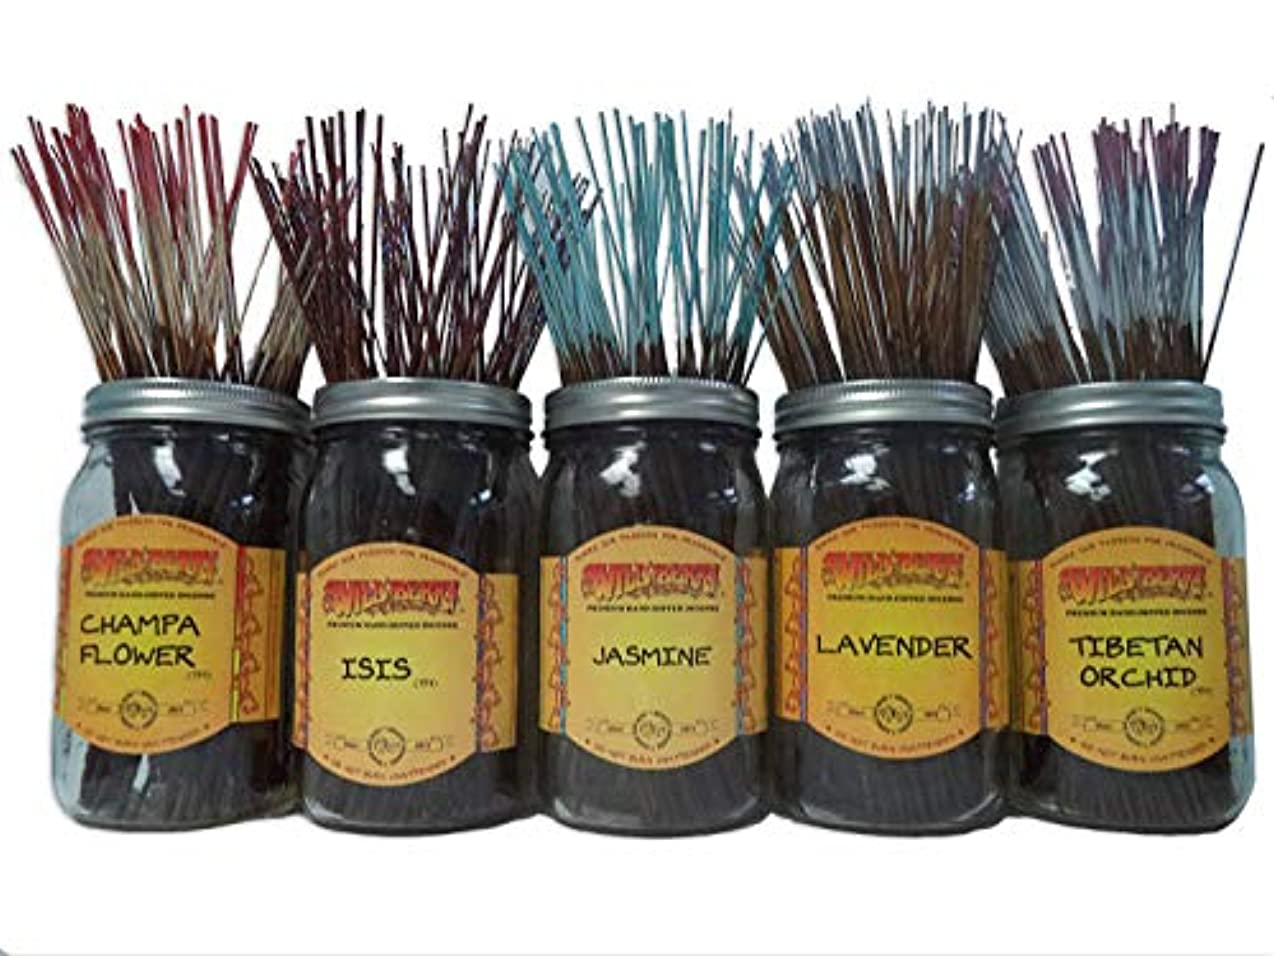 ナプキン大型トラックダムWildberry Incense Sticks Florals & Greens Scentsセット# 1 : 20 Sticks各5の香り、合計100 Sticks 。